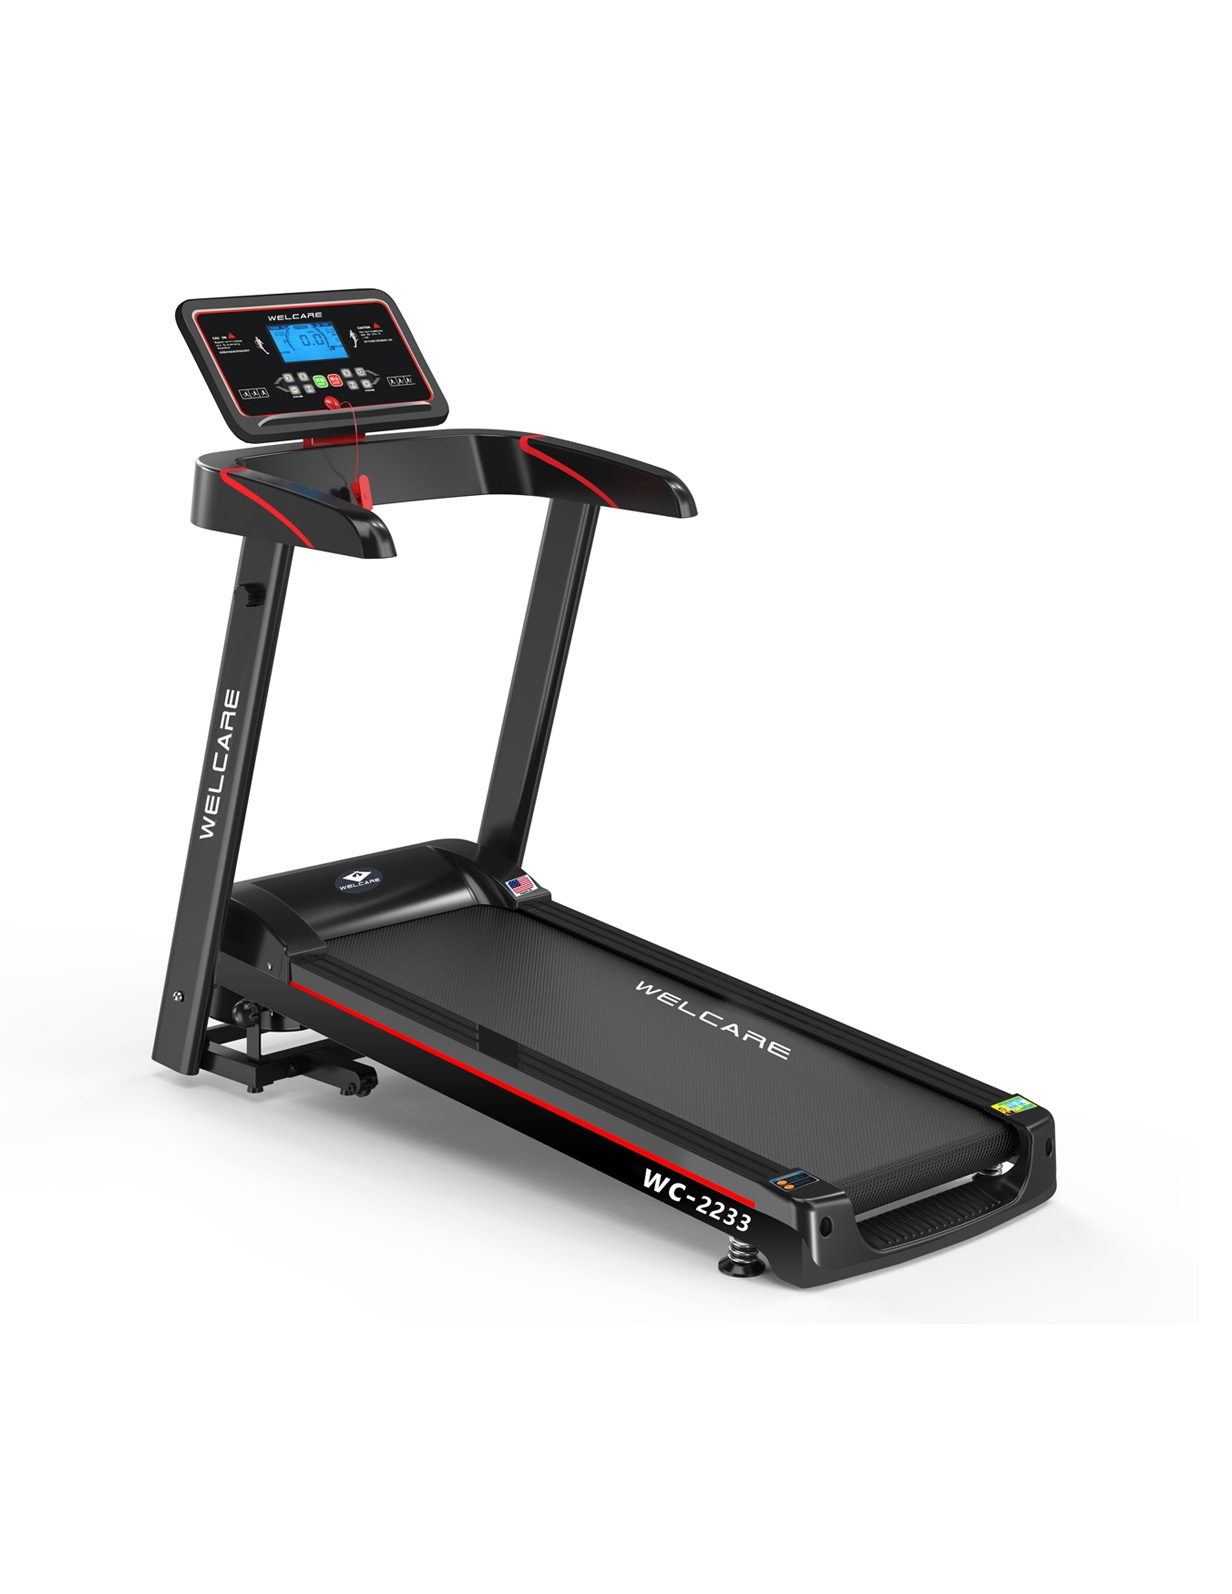 WC 2233 MOTORIZED TREADMILL